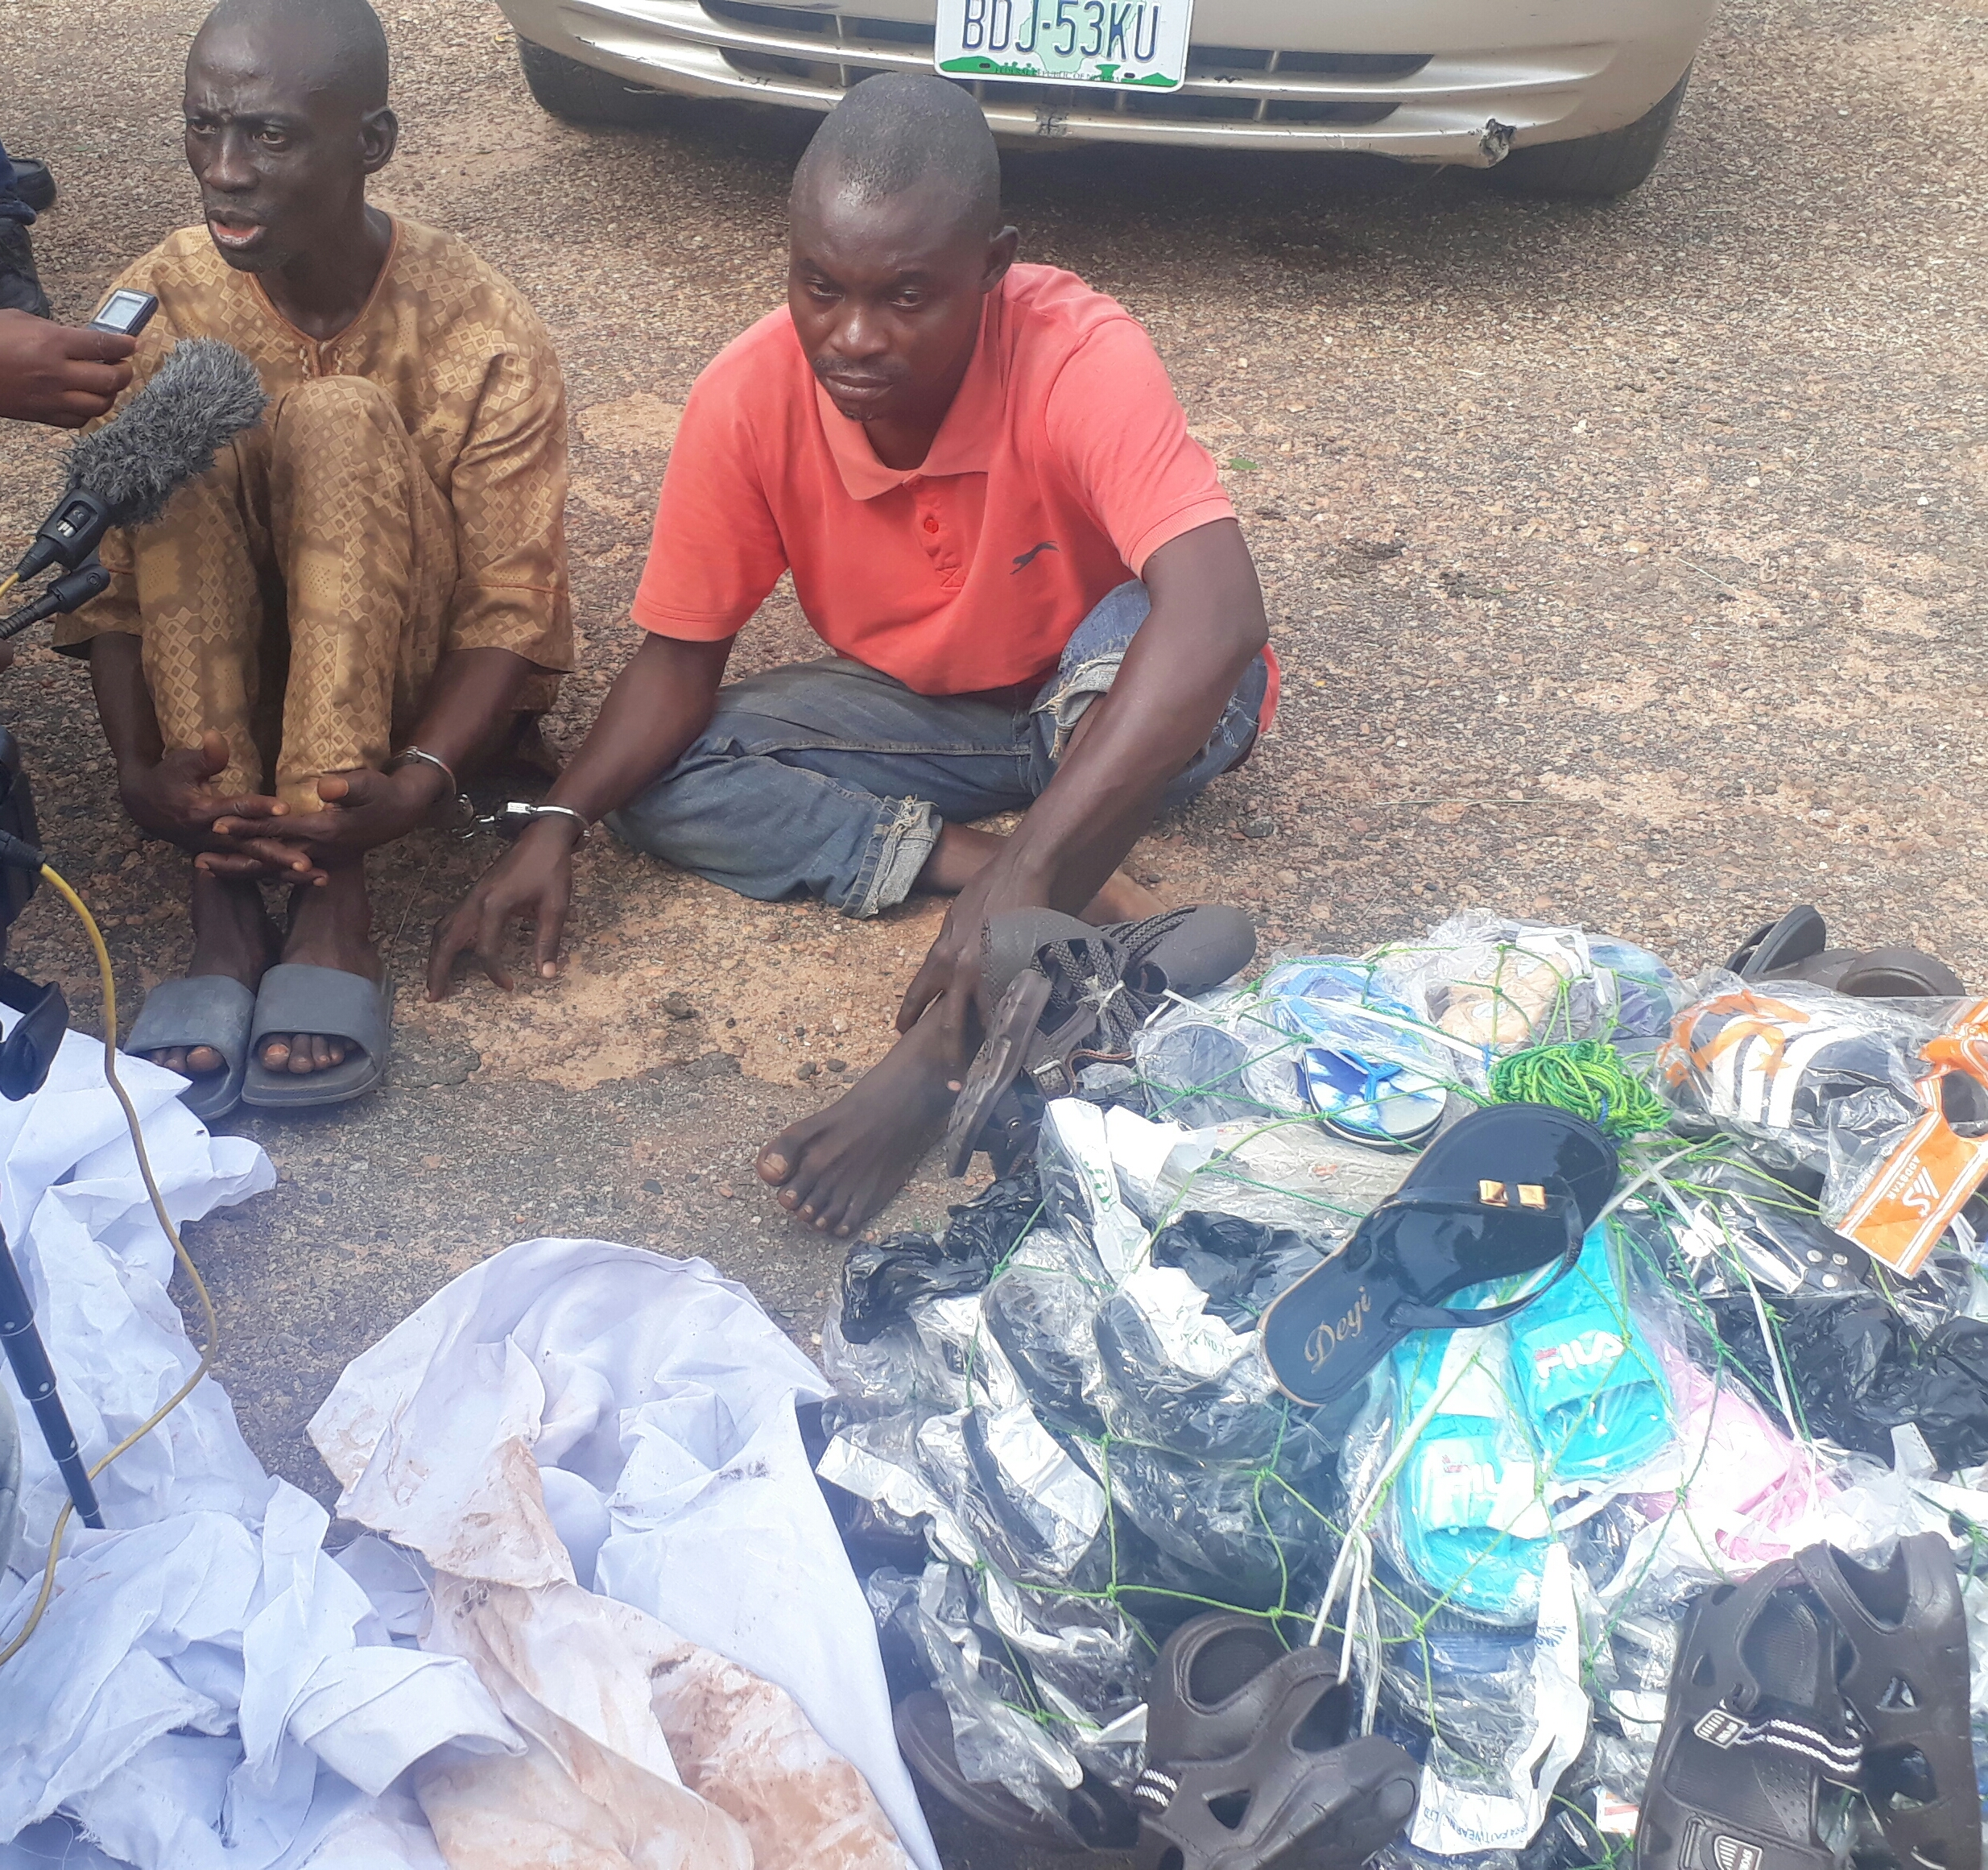 oyostate - Suspects Narrate How They hynopized A Sales Girl And Collected N1.4 Million Naira From Her